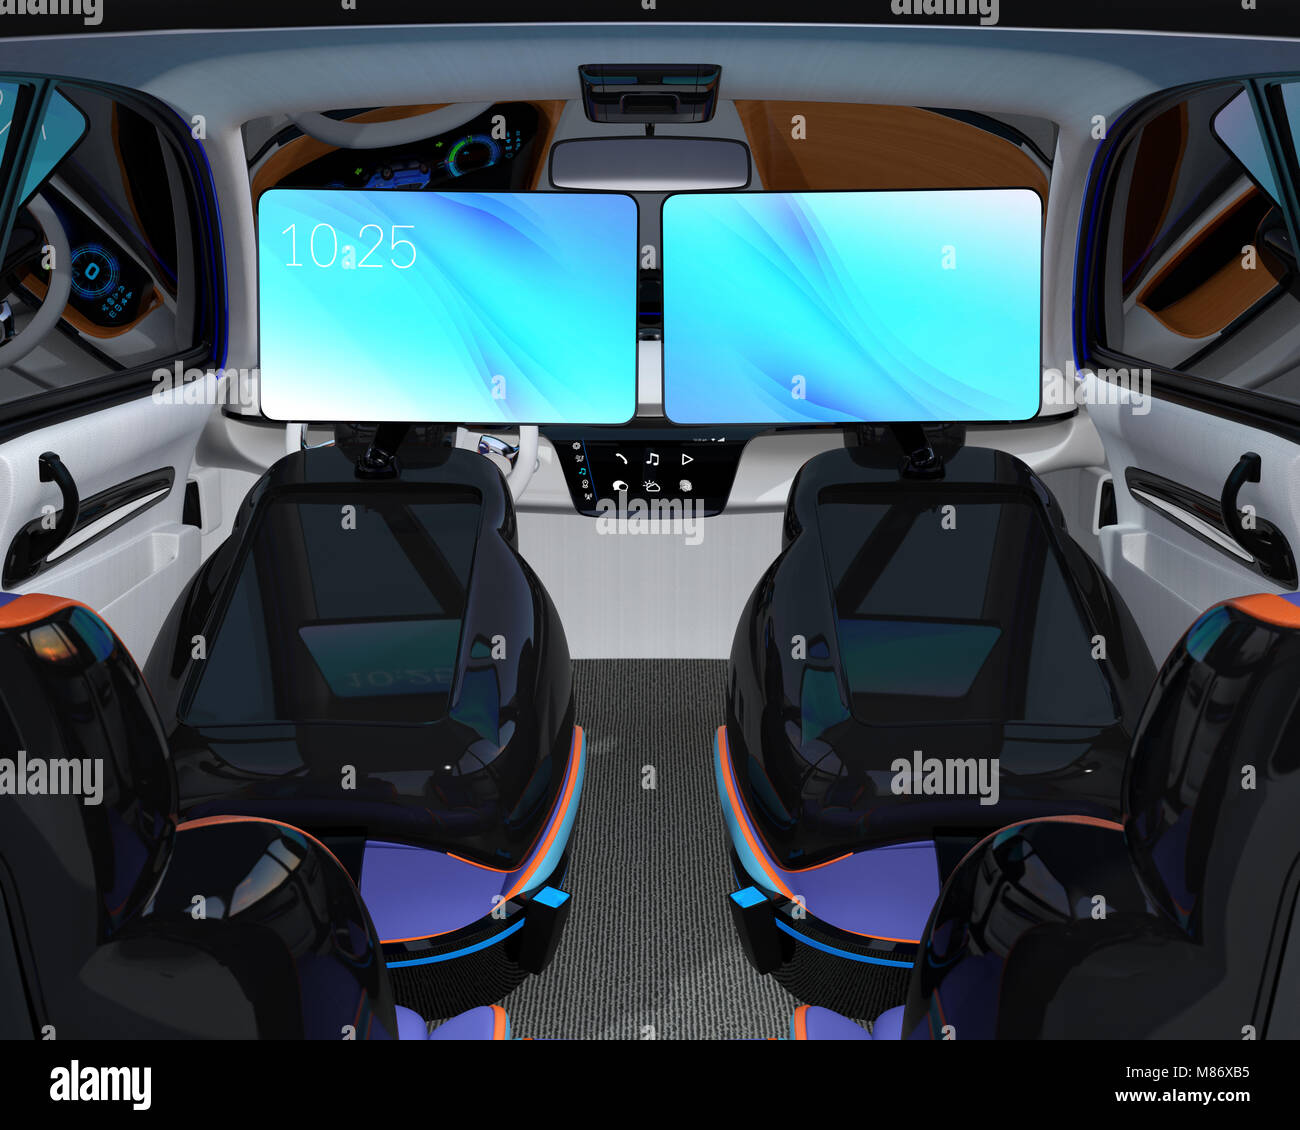 Self Driving Car Interior Concept Front Stockfotos & Self Driving ...